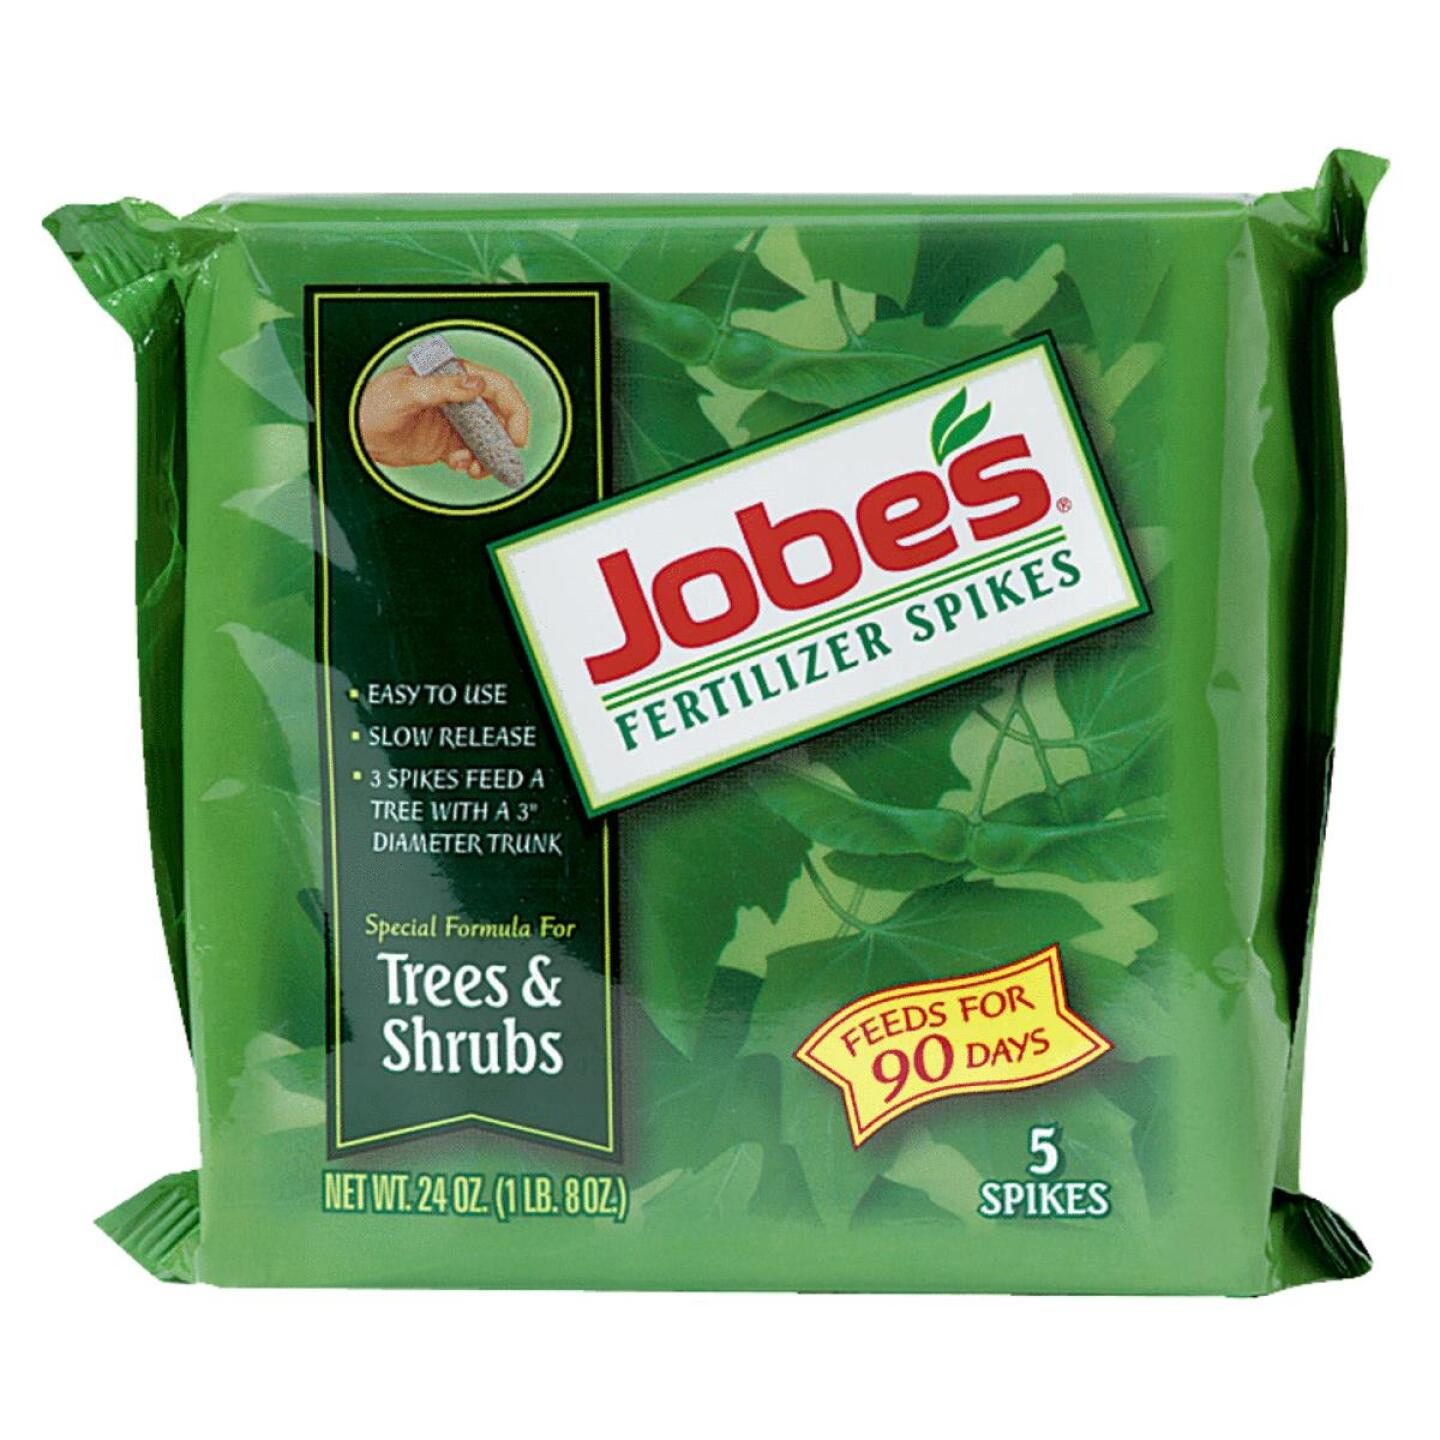 Jobe's 16-4-4 Tree & Shrub Fertilizer Spikes (5-Pack) Image 1